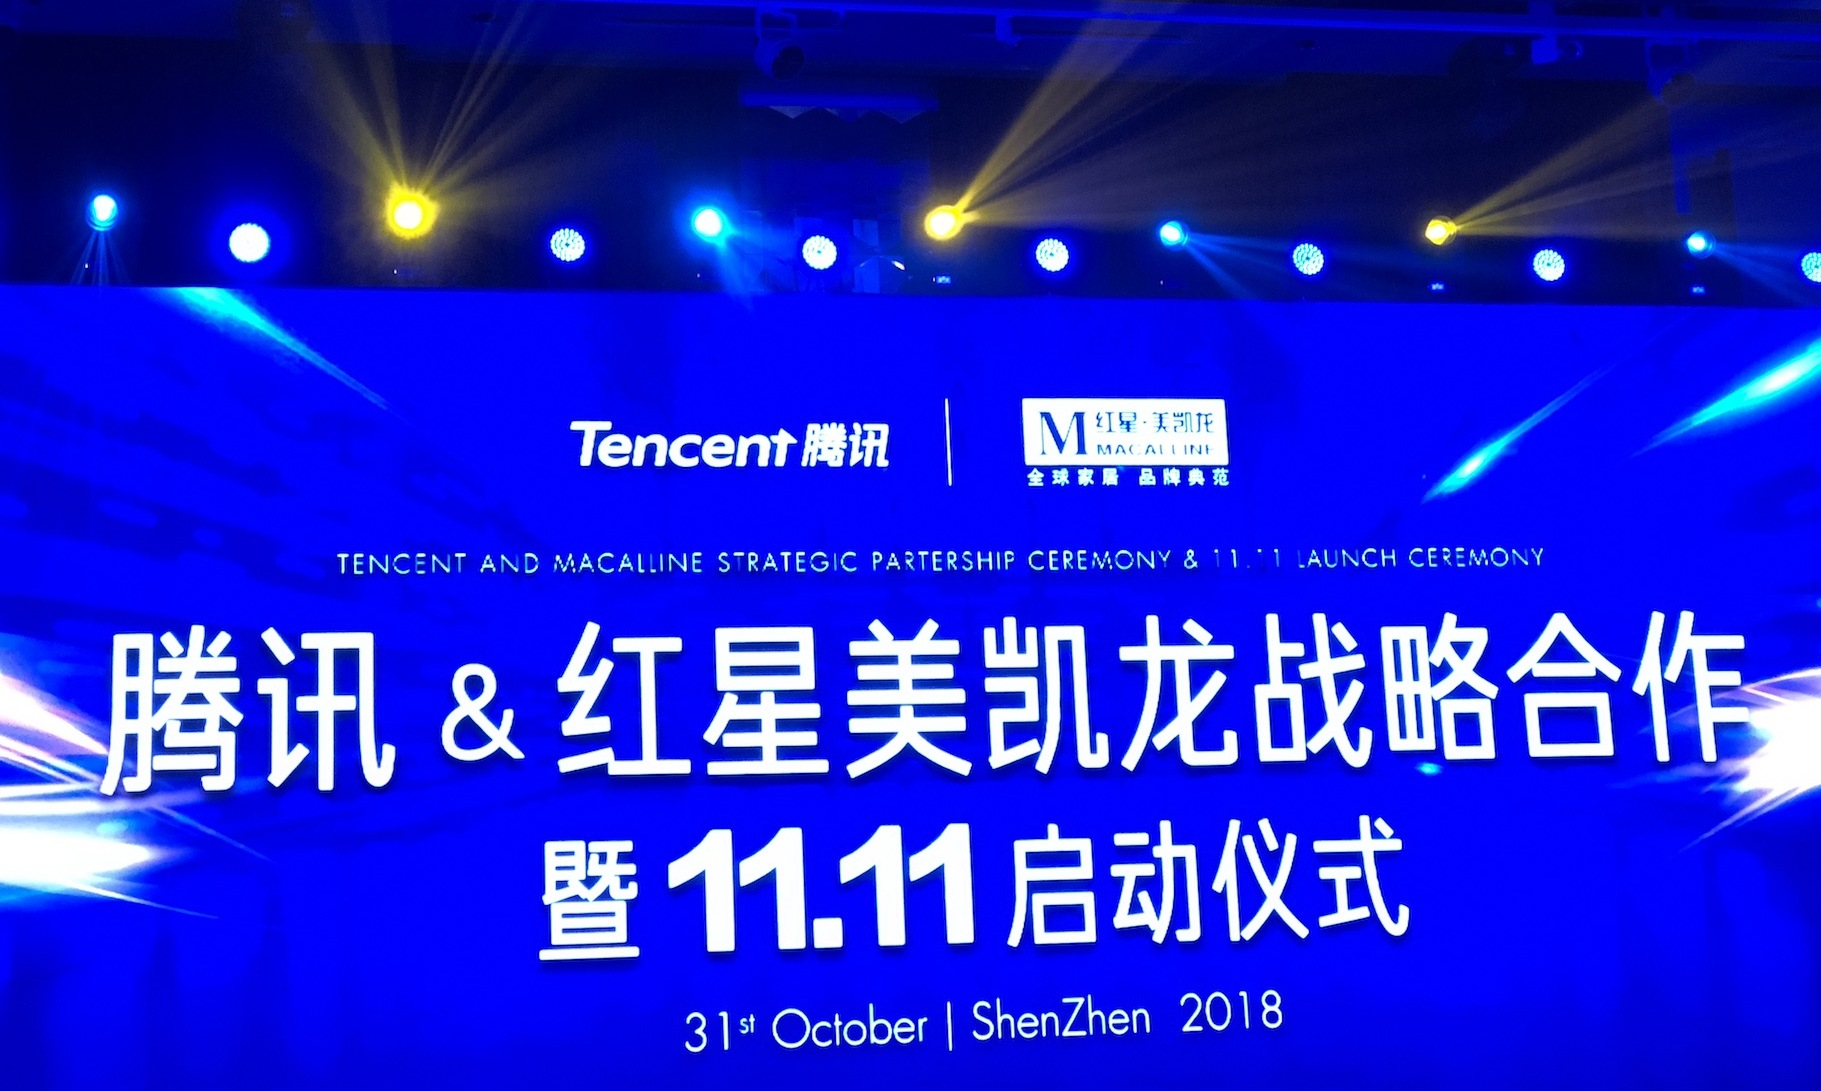 Red Star Macalline,Tencent,Red Star Macalline x Tencent, Help Digital Development in the Home Industry